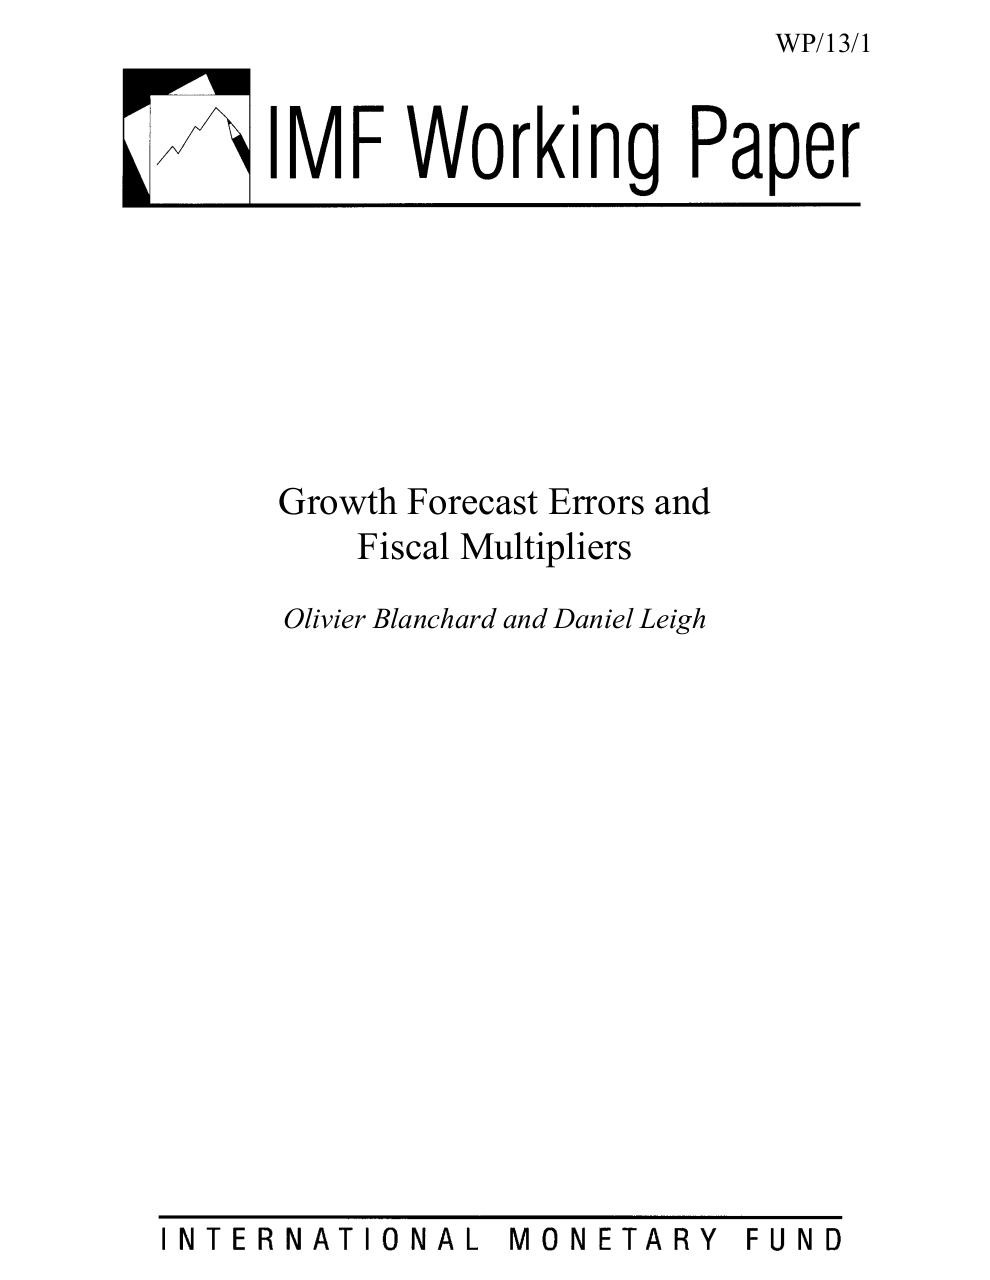 wp1301_Growth Forecast Errors and Fiscal Multipliers_Olivier Blanchard Daniel Leigh.pdf - page 1/43